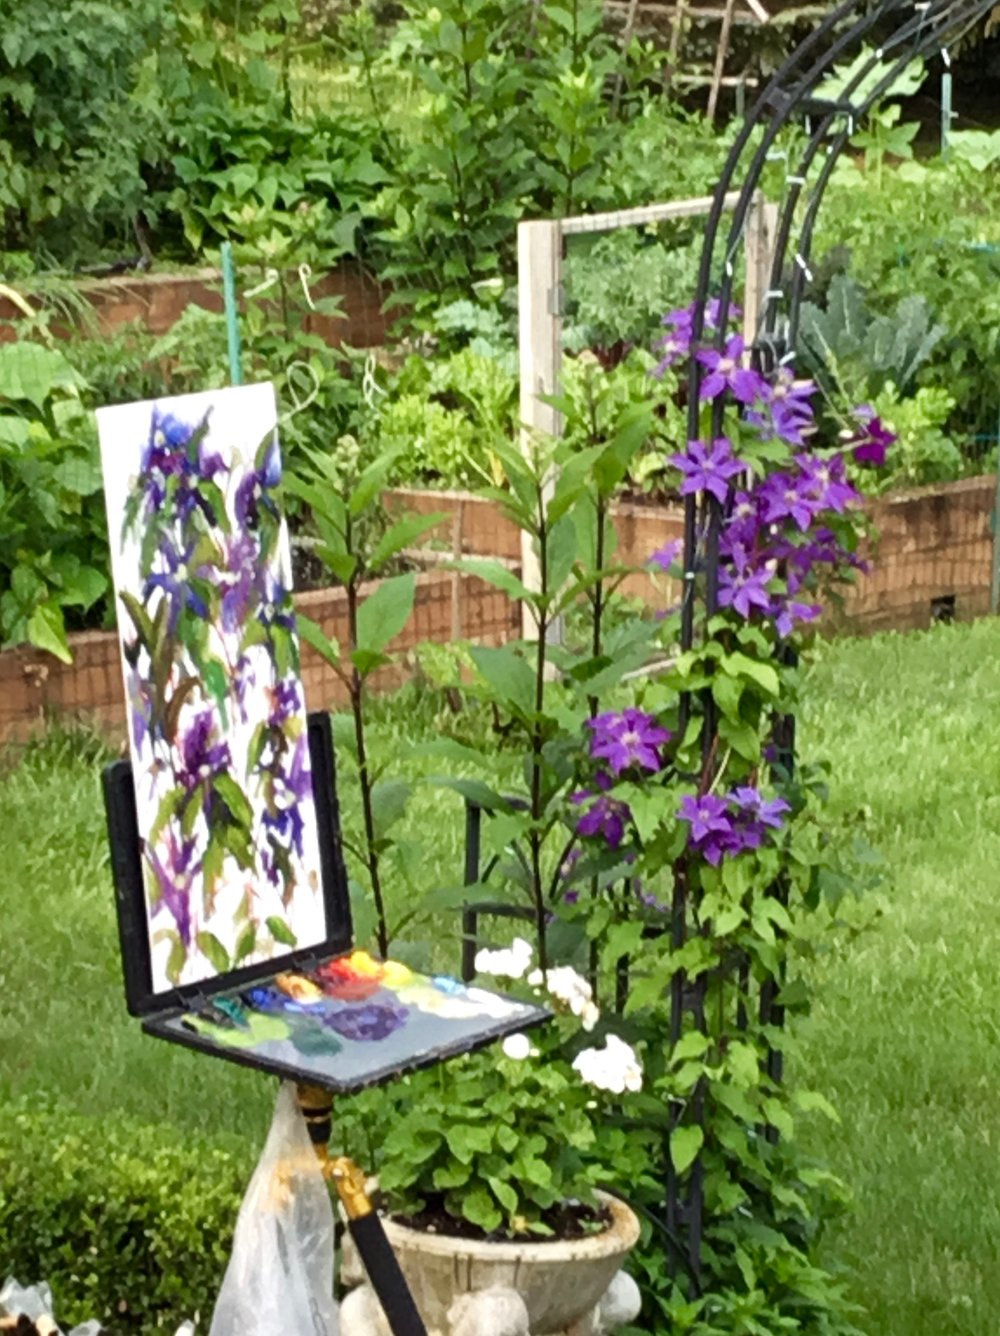 Painting in the garden.